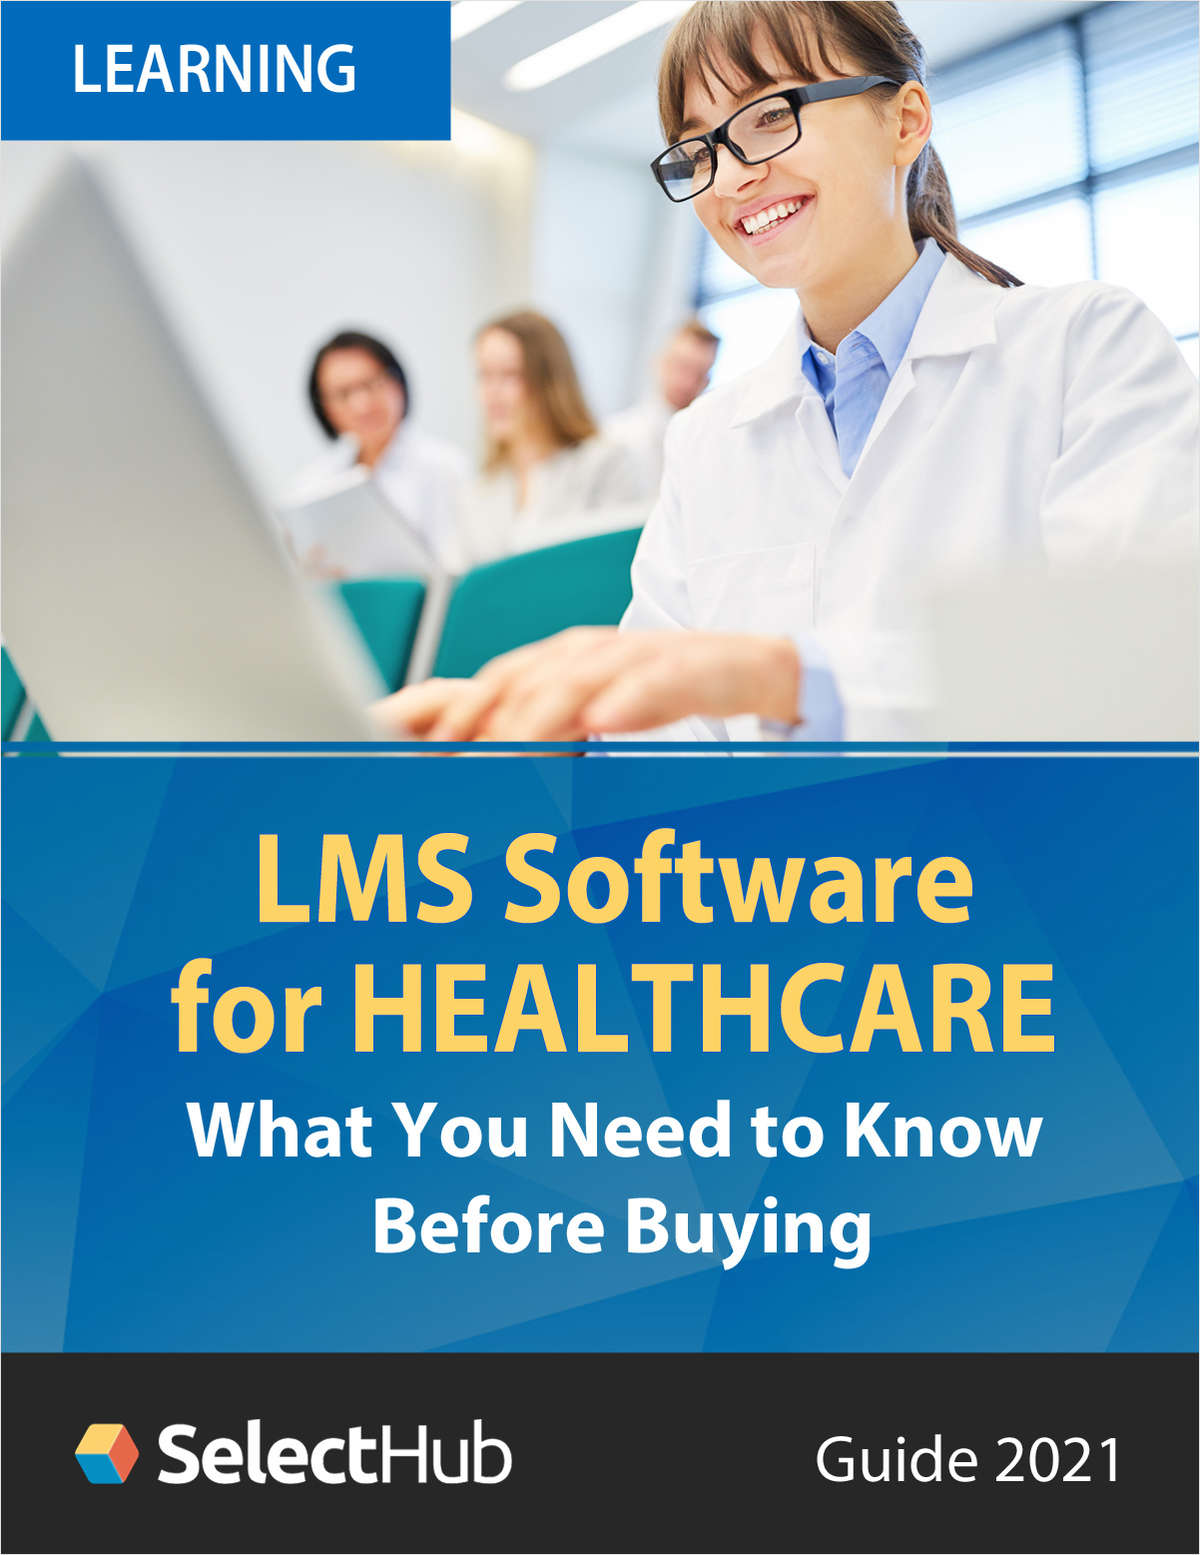 LMS Software for Healthcare--What You Need to Know Before Buying